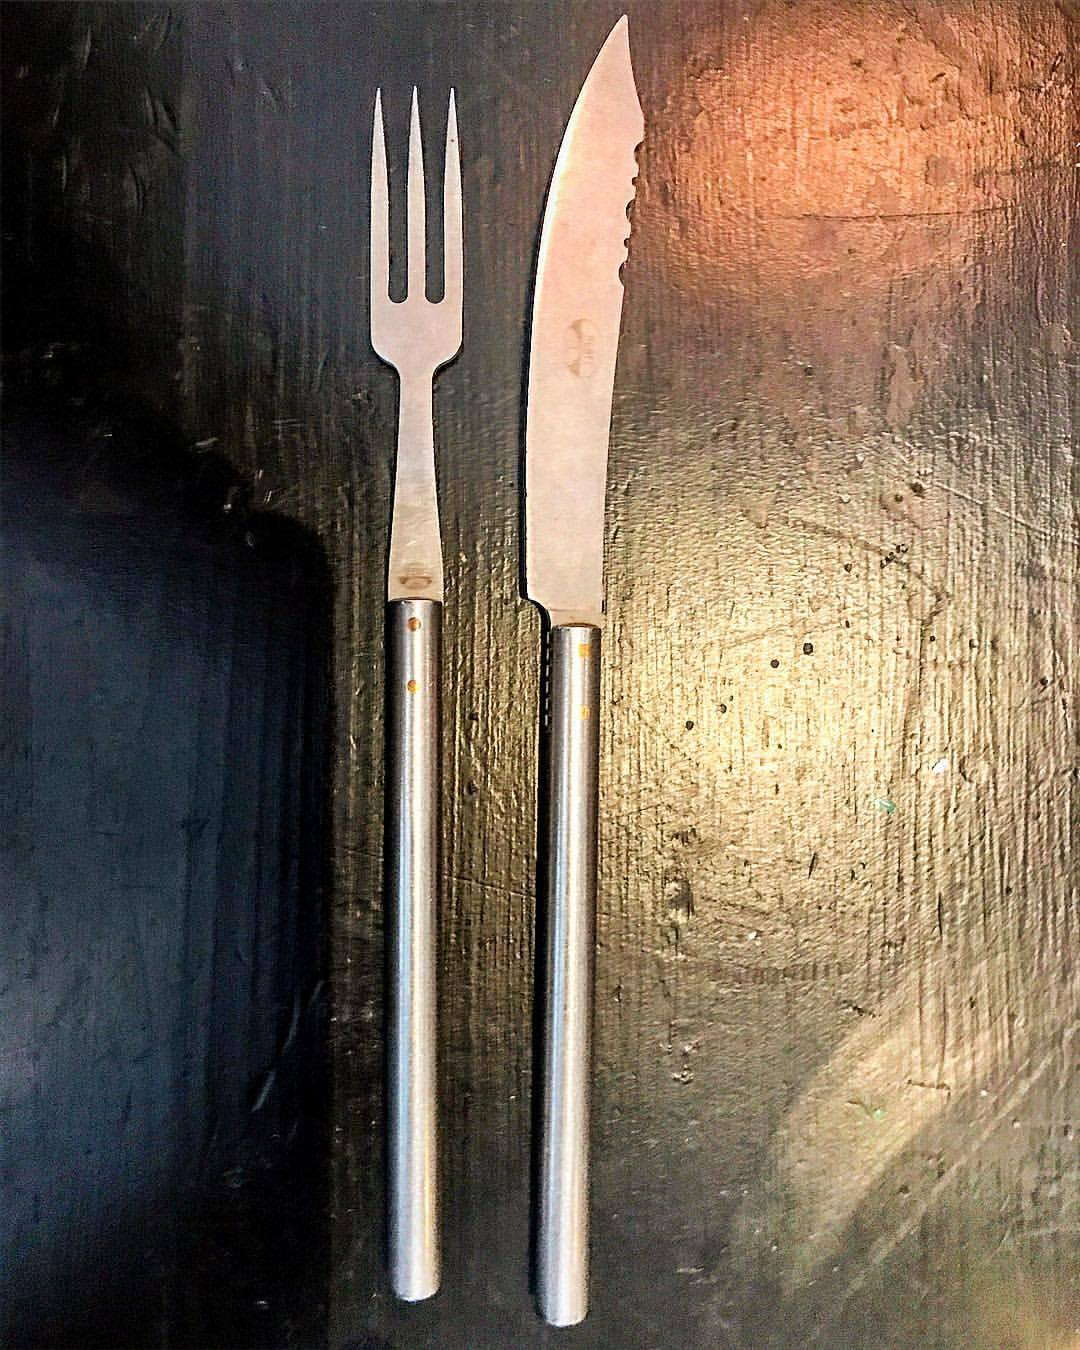 Fetching cutlery from the 1960s by Italian knifesmith Coltellerie Berti in Florence.  Since 1895, each knife is produced by the hands of one craftsman from beginning to end.  Hot.  -   #italy #knifesmith #berti #italiandesign #60sdesign  (at Locanda Chiaravalle - Altra Cucina)